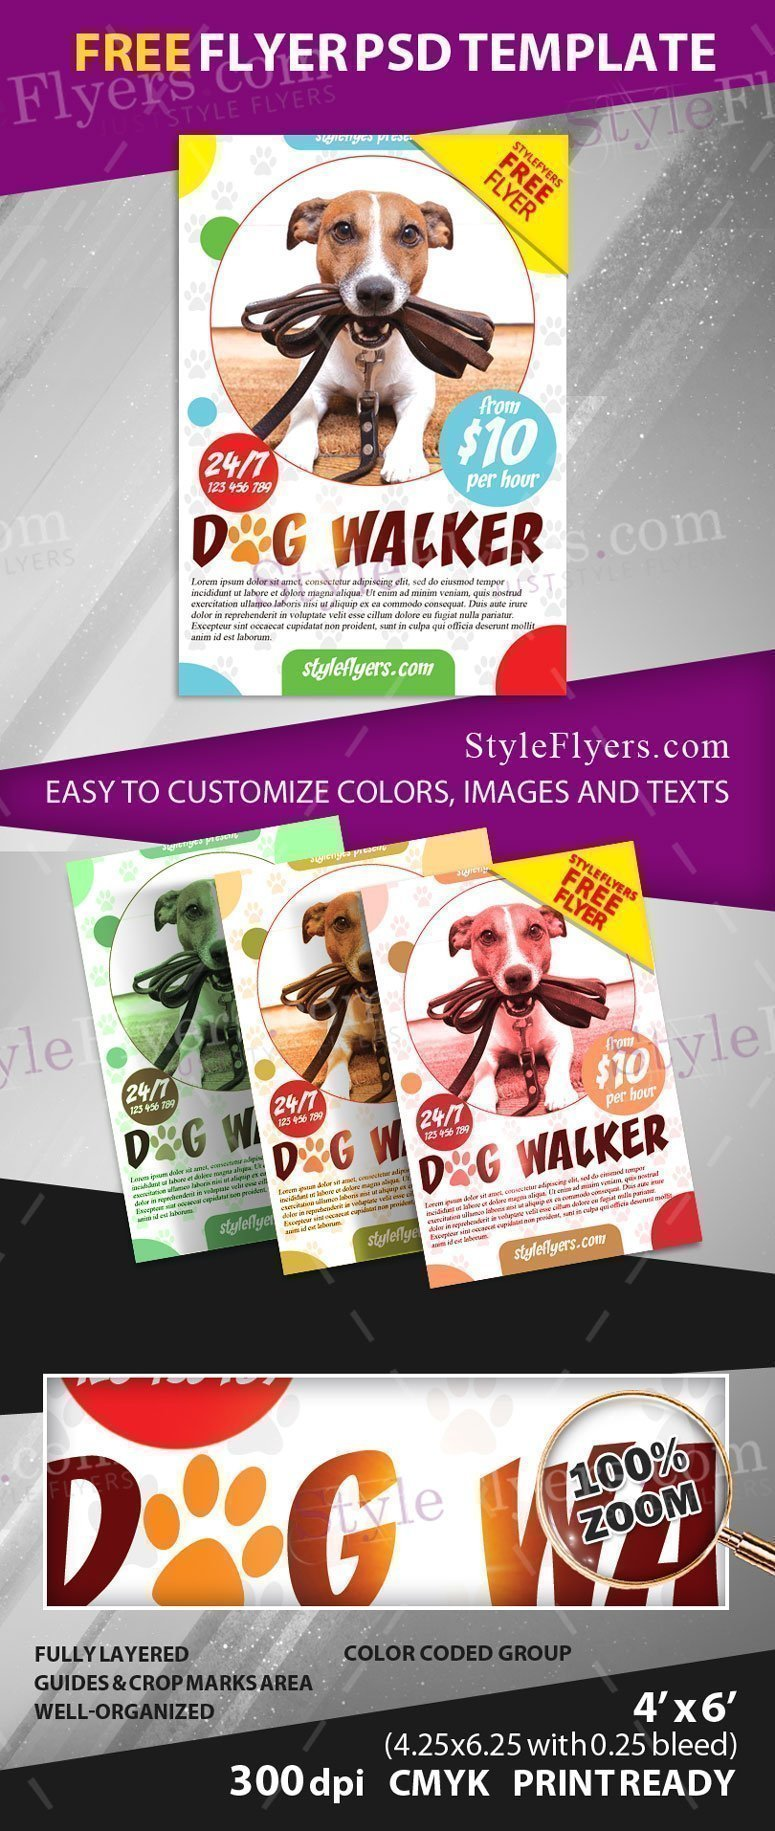 puppy for sale flyer templates - dog walker free psd flyer template free download 20900